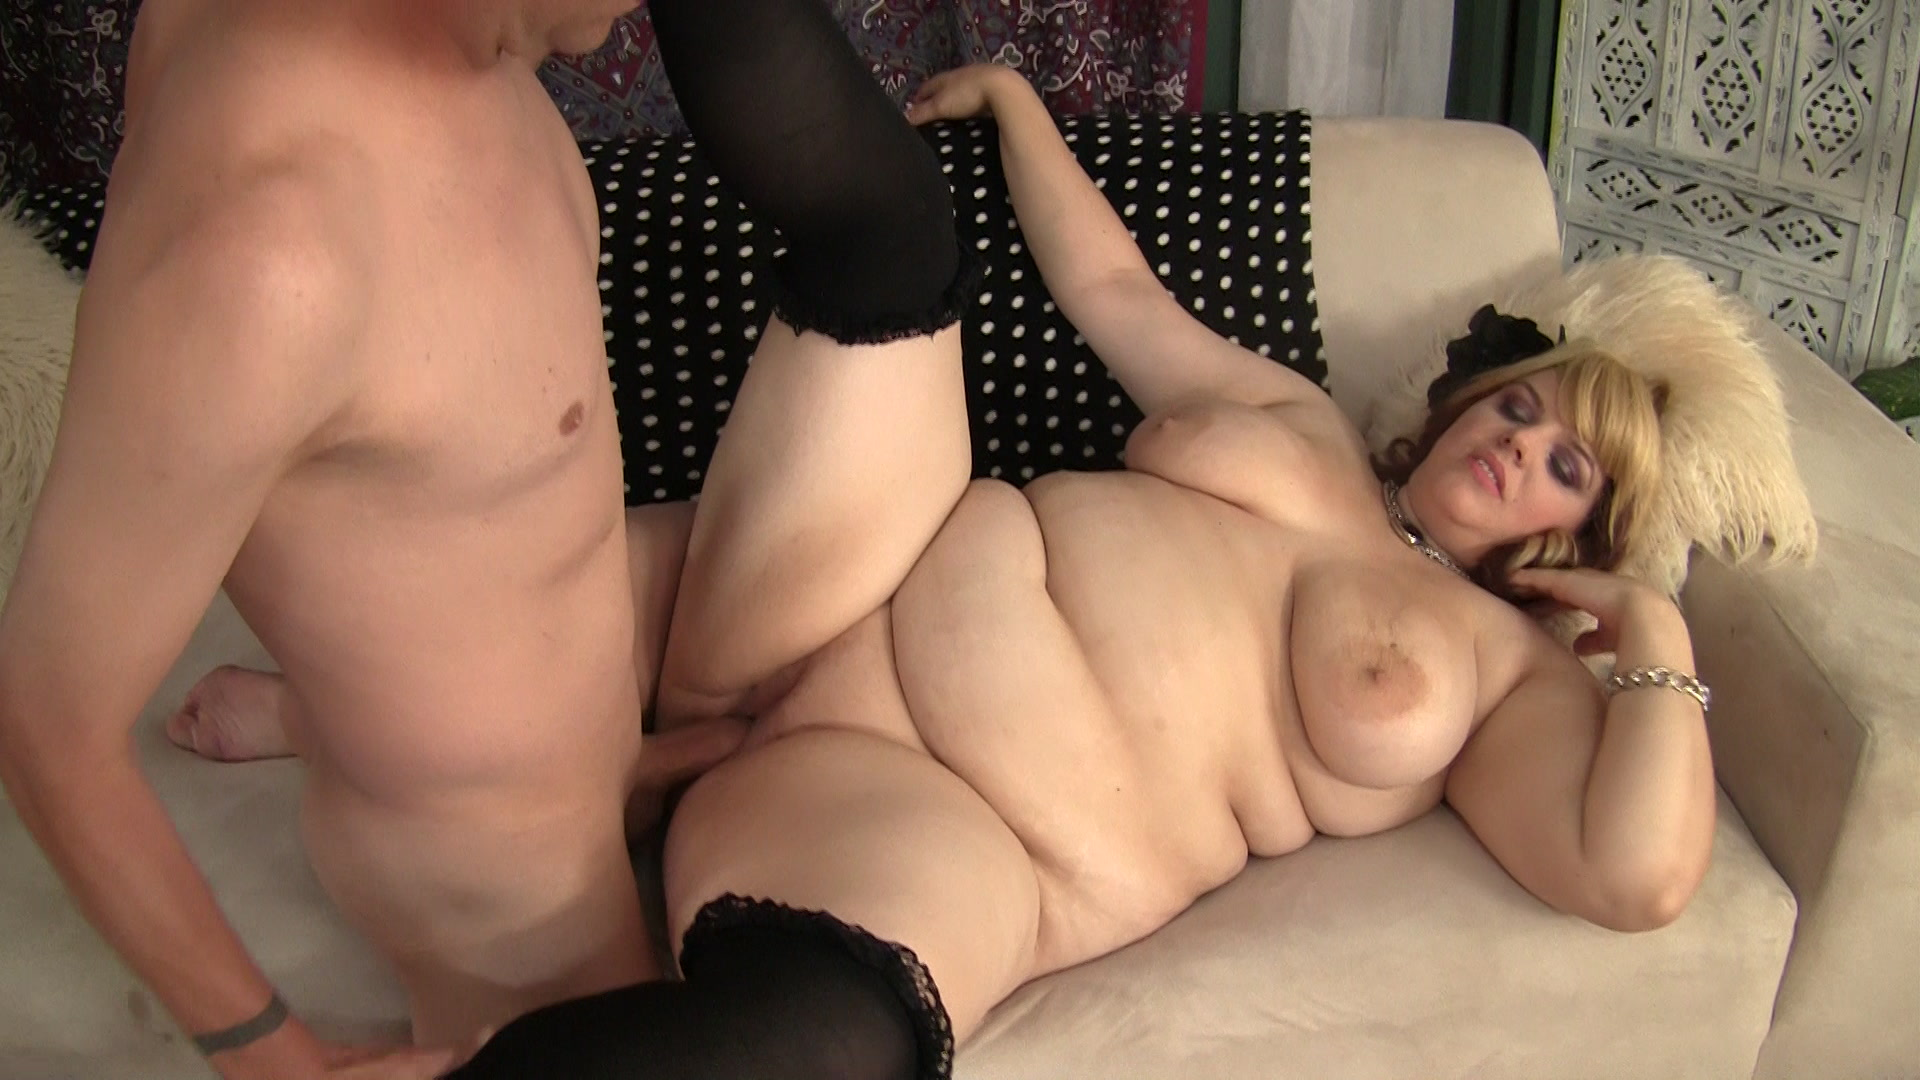 Chubby Chick Loves to Fuck from Plumper Paradise | Eye Candy ...